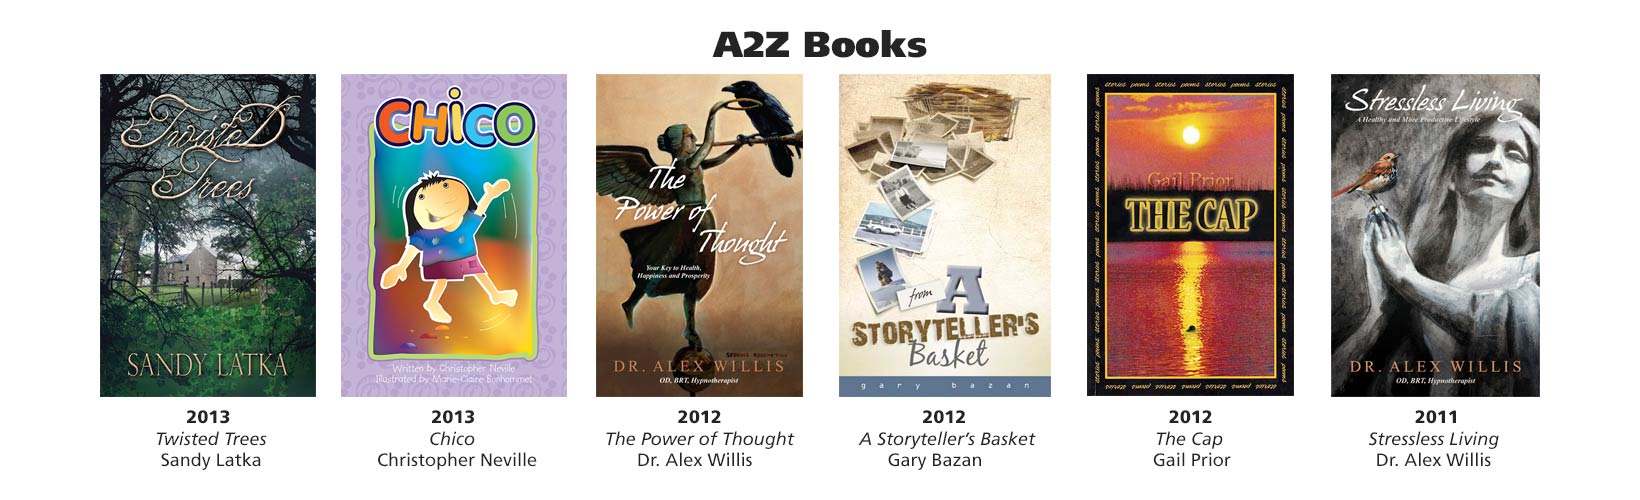 Books published under consultation with Yasmin John-Thorpe's A2Z Books